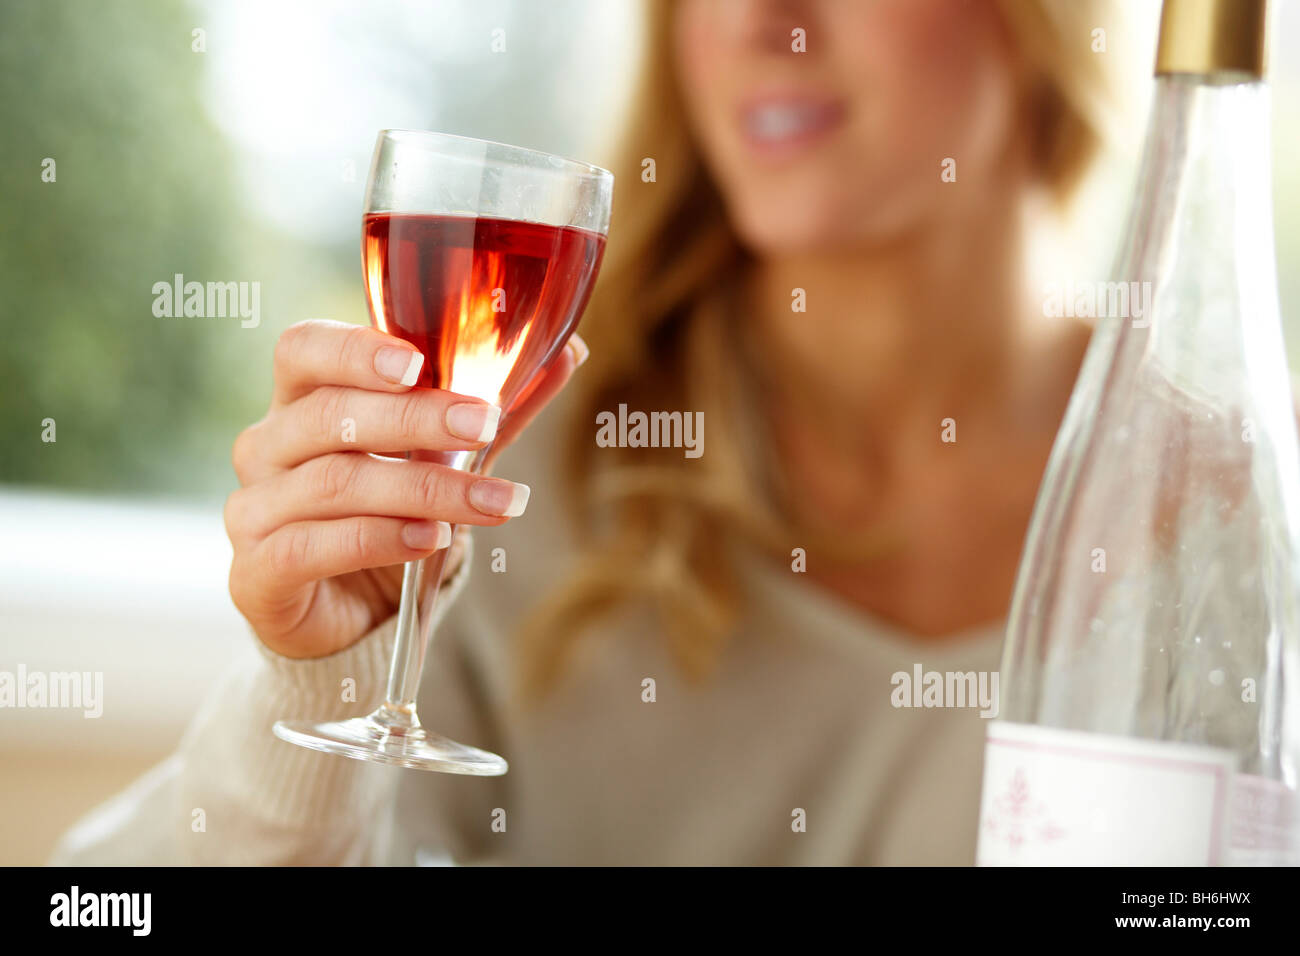 Woman drinking wine - Stock Image